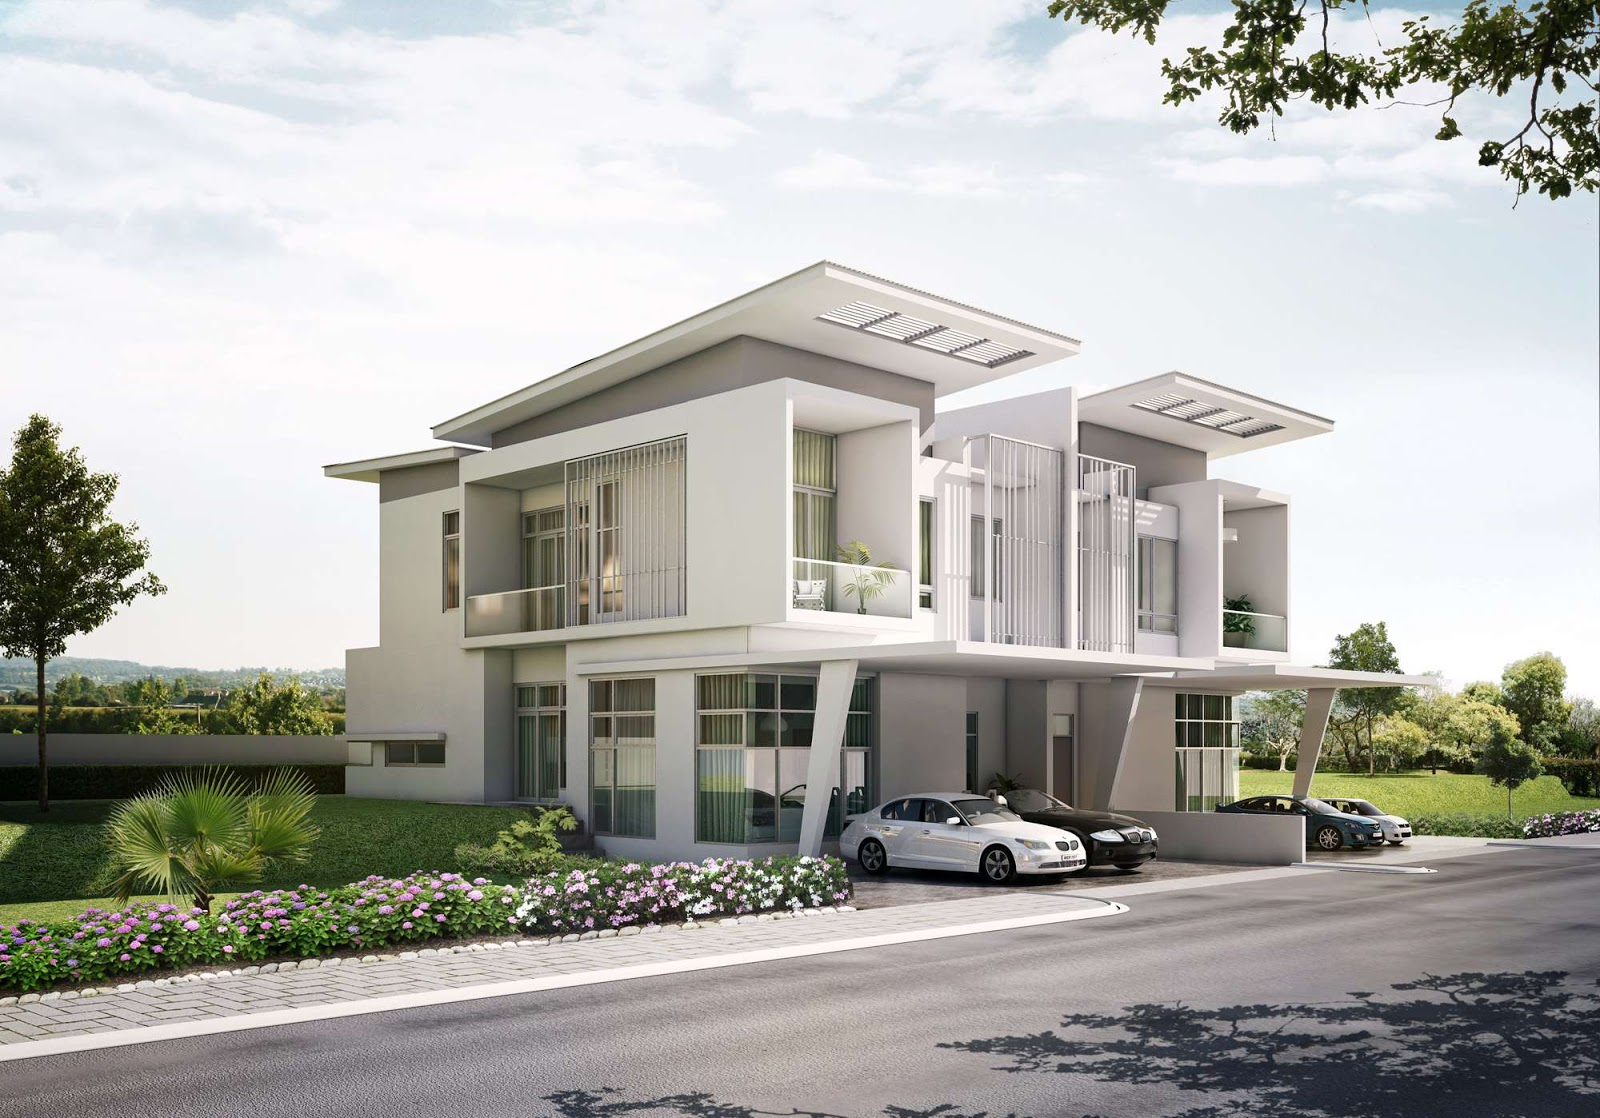 New home designs latest singapore modern homes exterior for Latest house design images